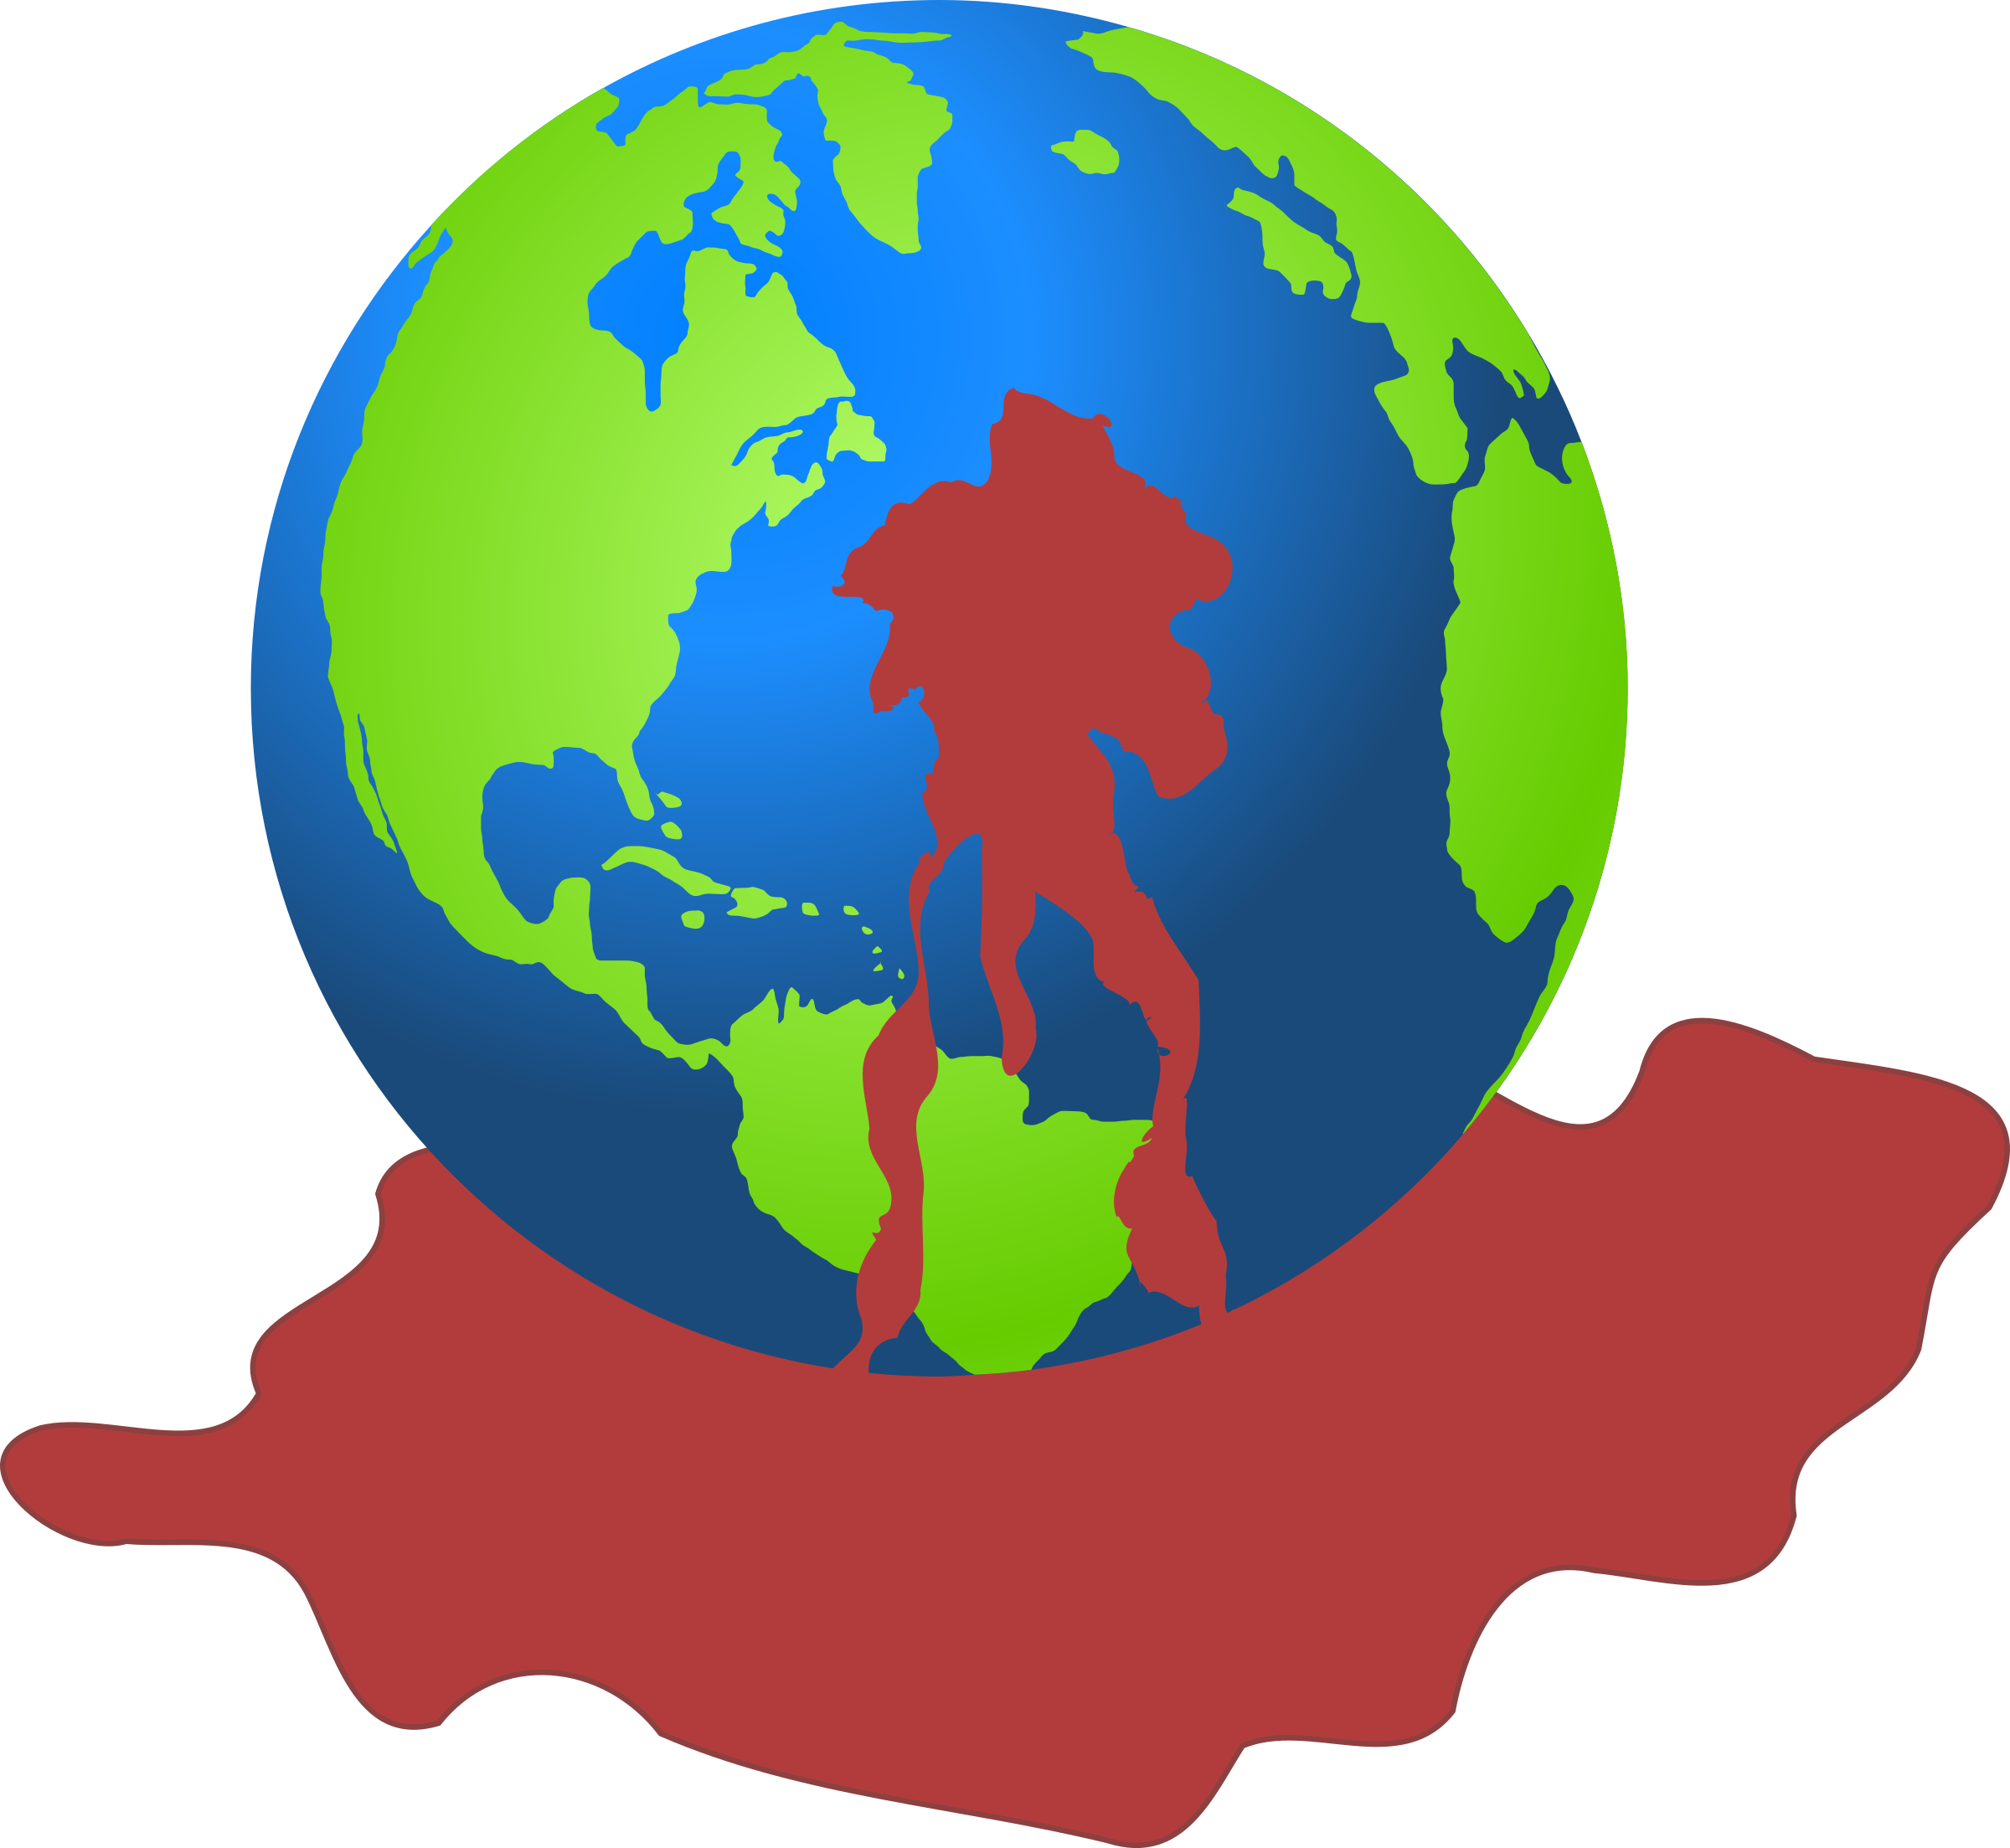 Bloody earth big image. Globe clipart polluted